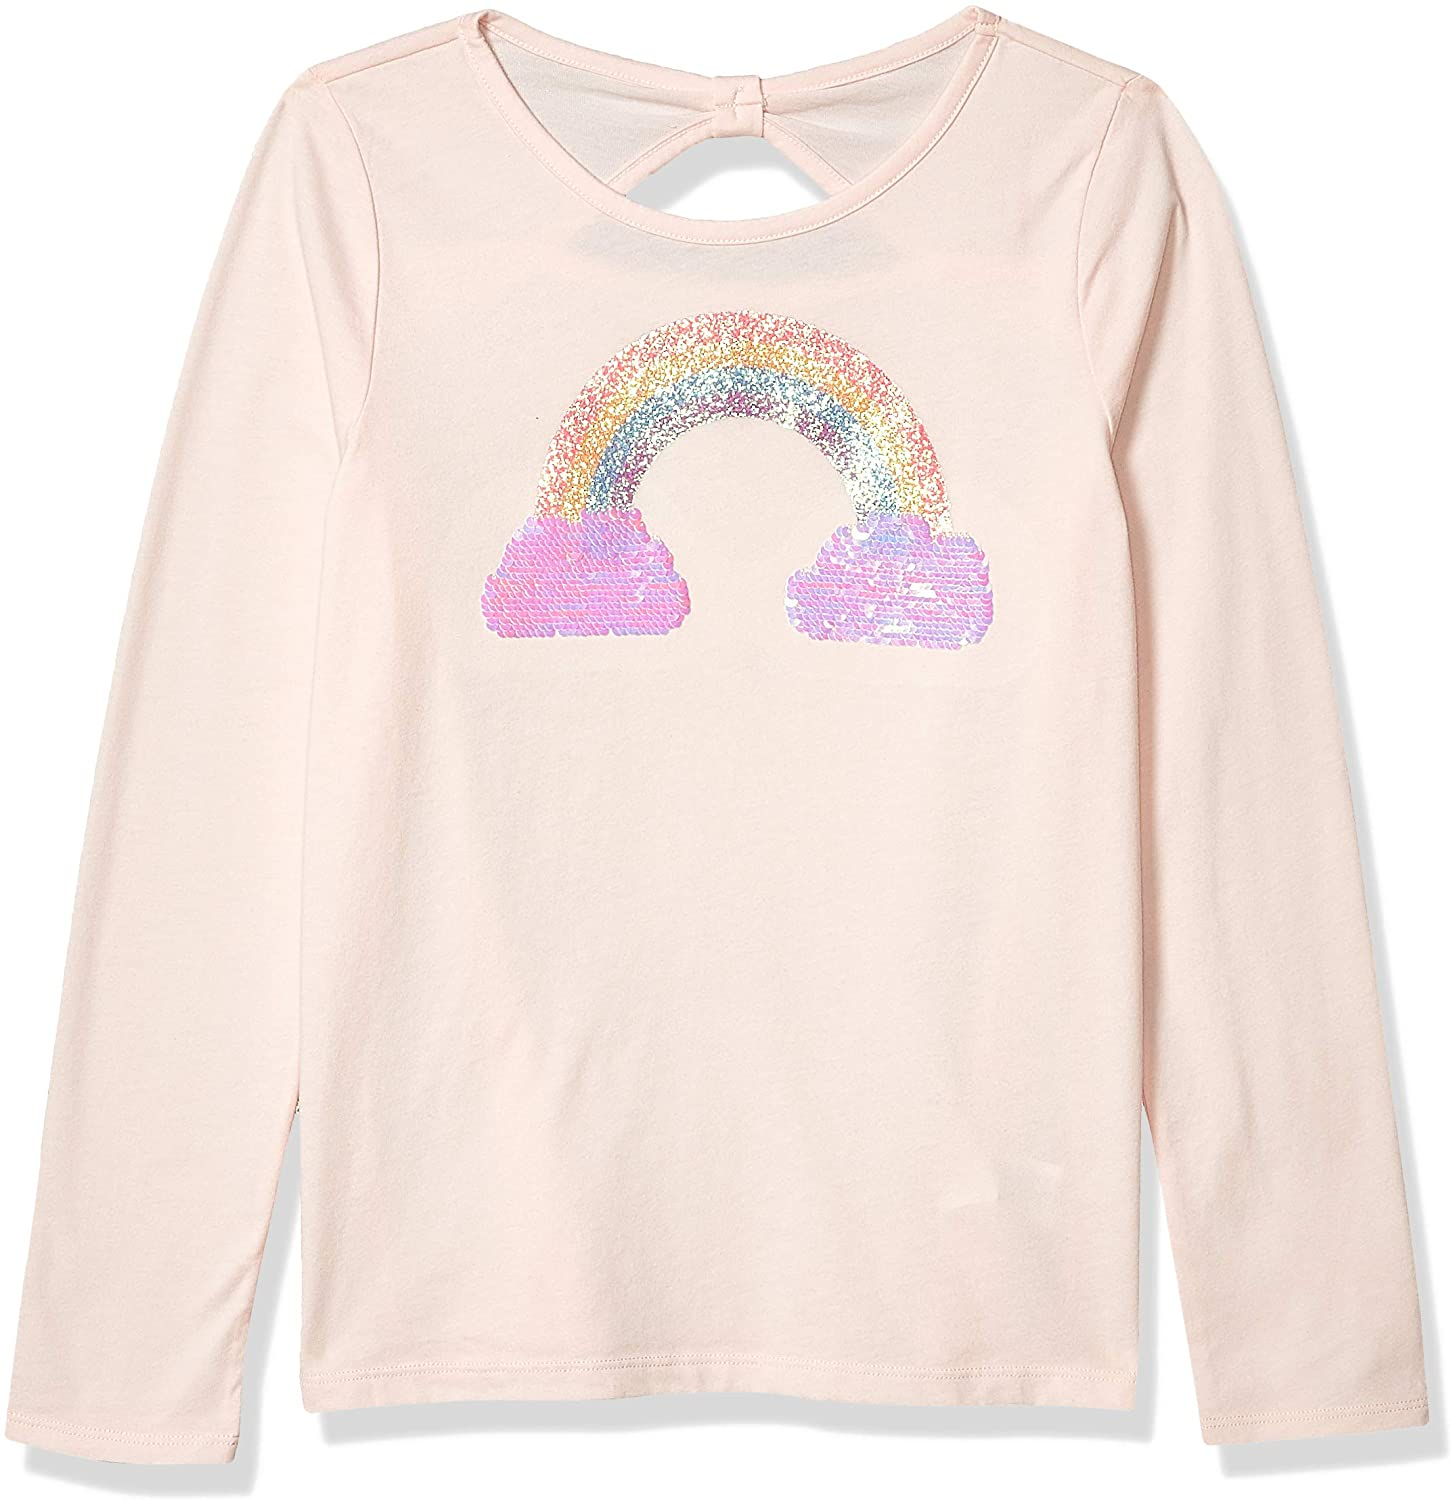 The Children's Place Girls' Long Sleeve Active Graphic Top